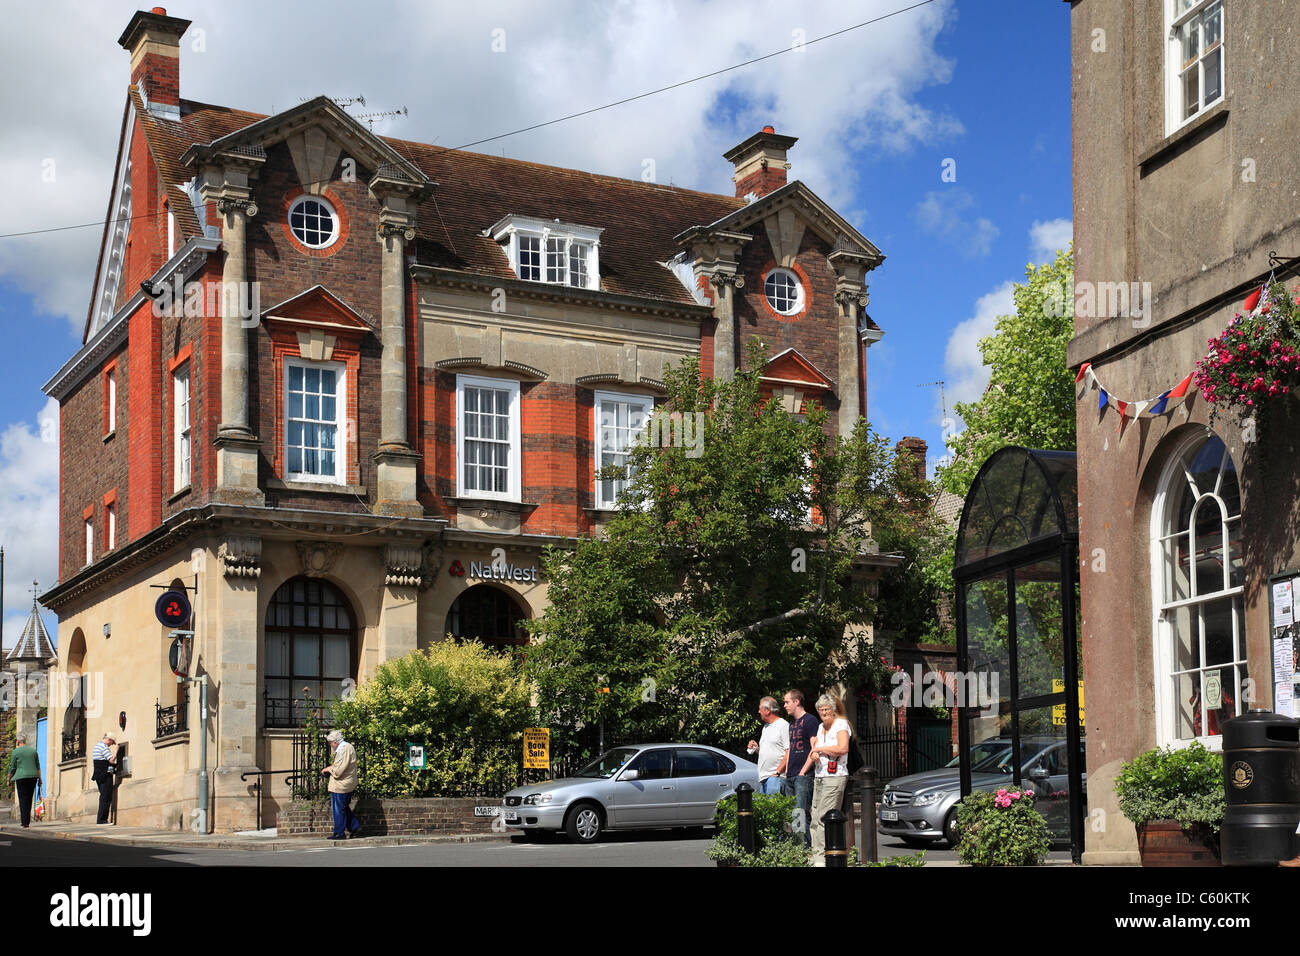 Petworth town, old bank building, Market Square, West Sussex, England - Stock Image